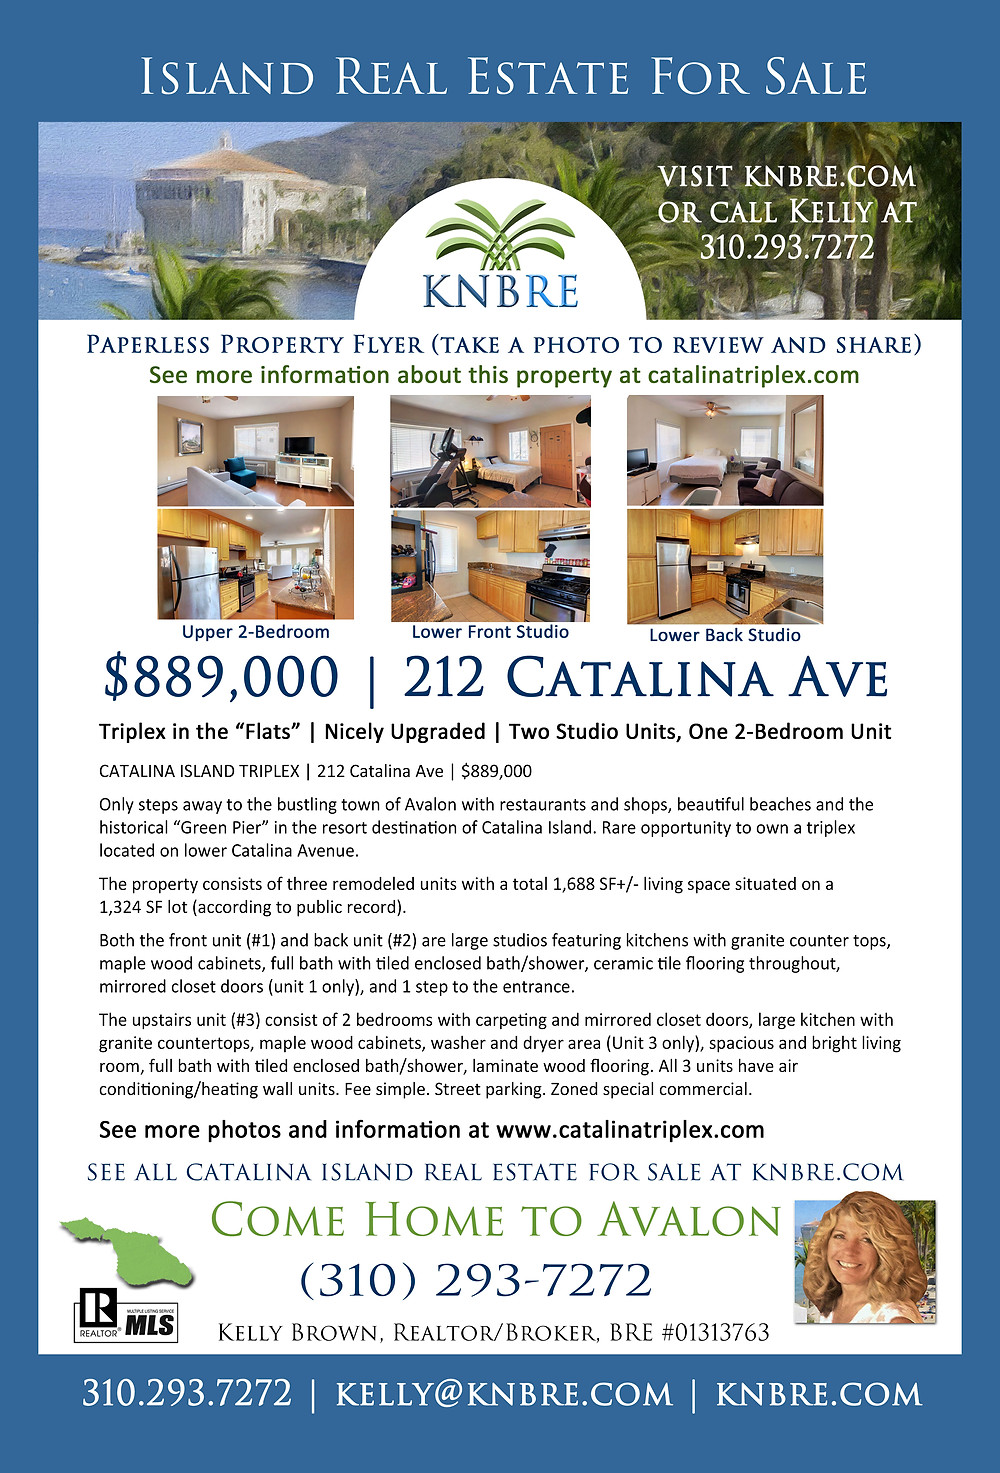 Paperless Property Flyer - 212 Catalina Ave